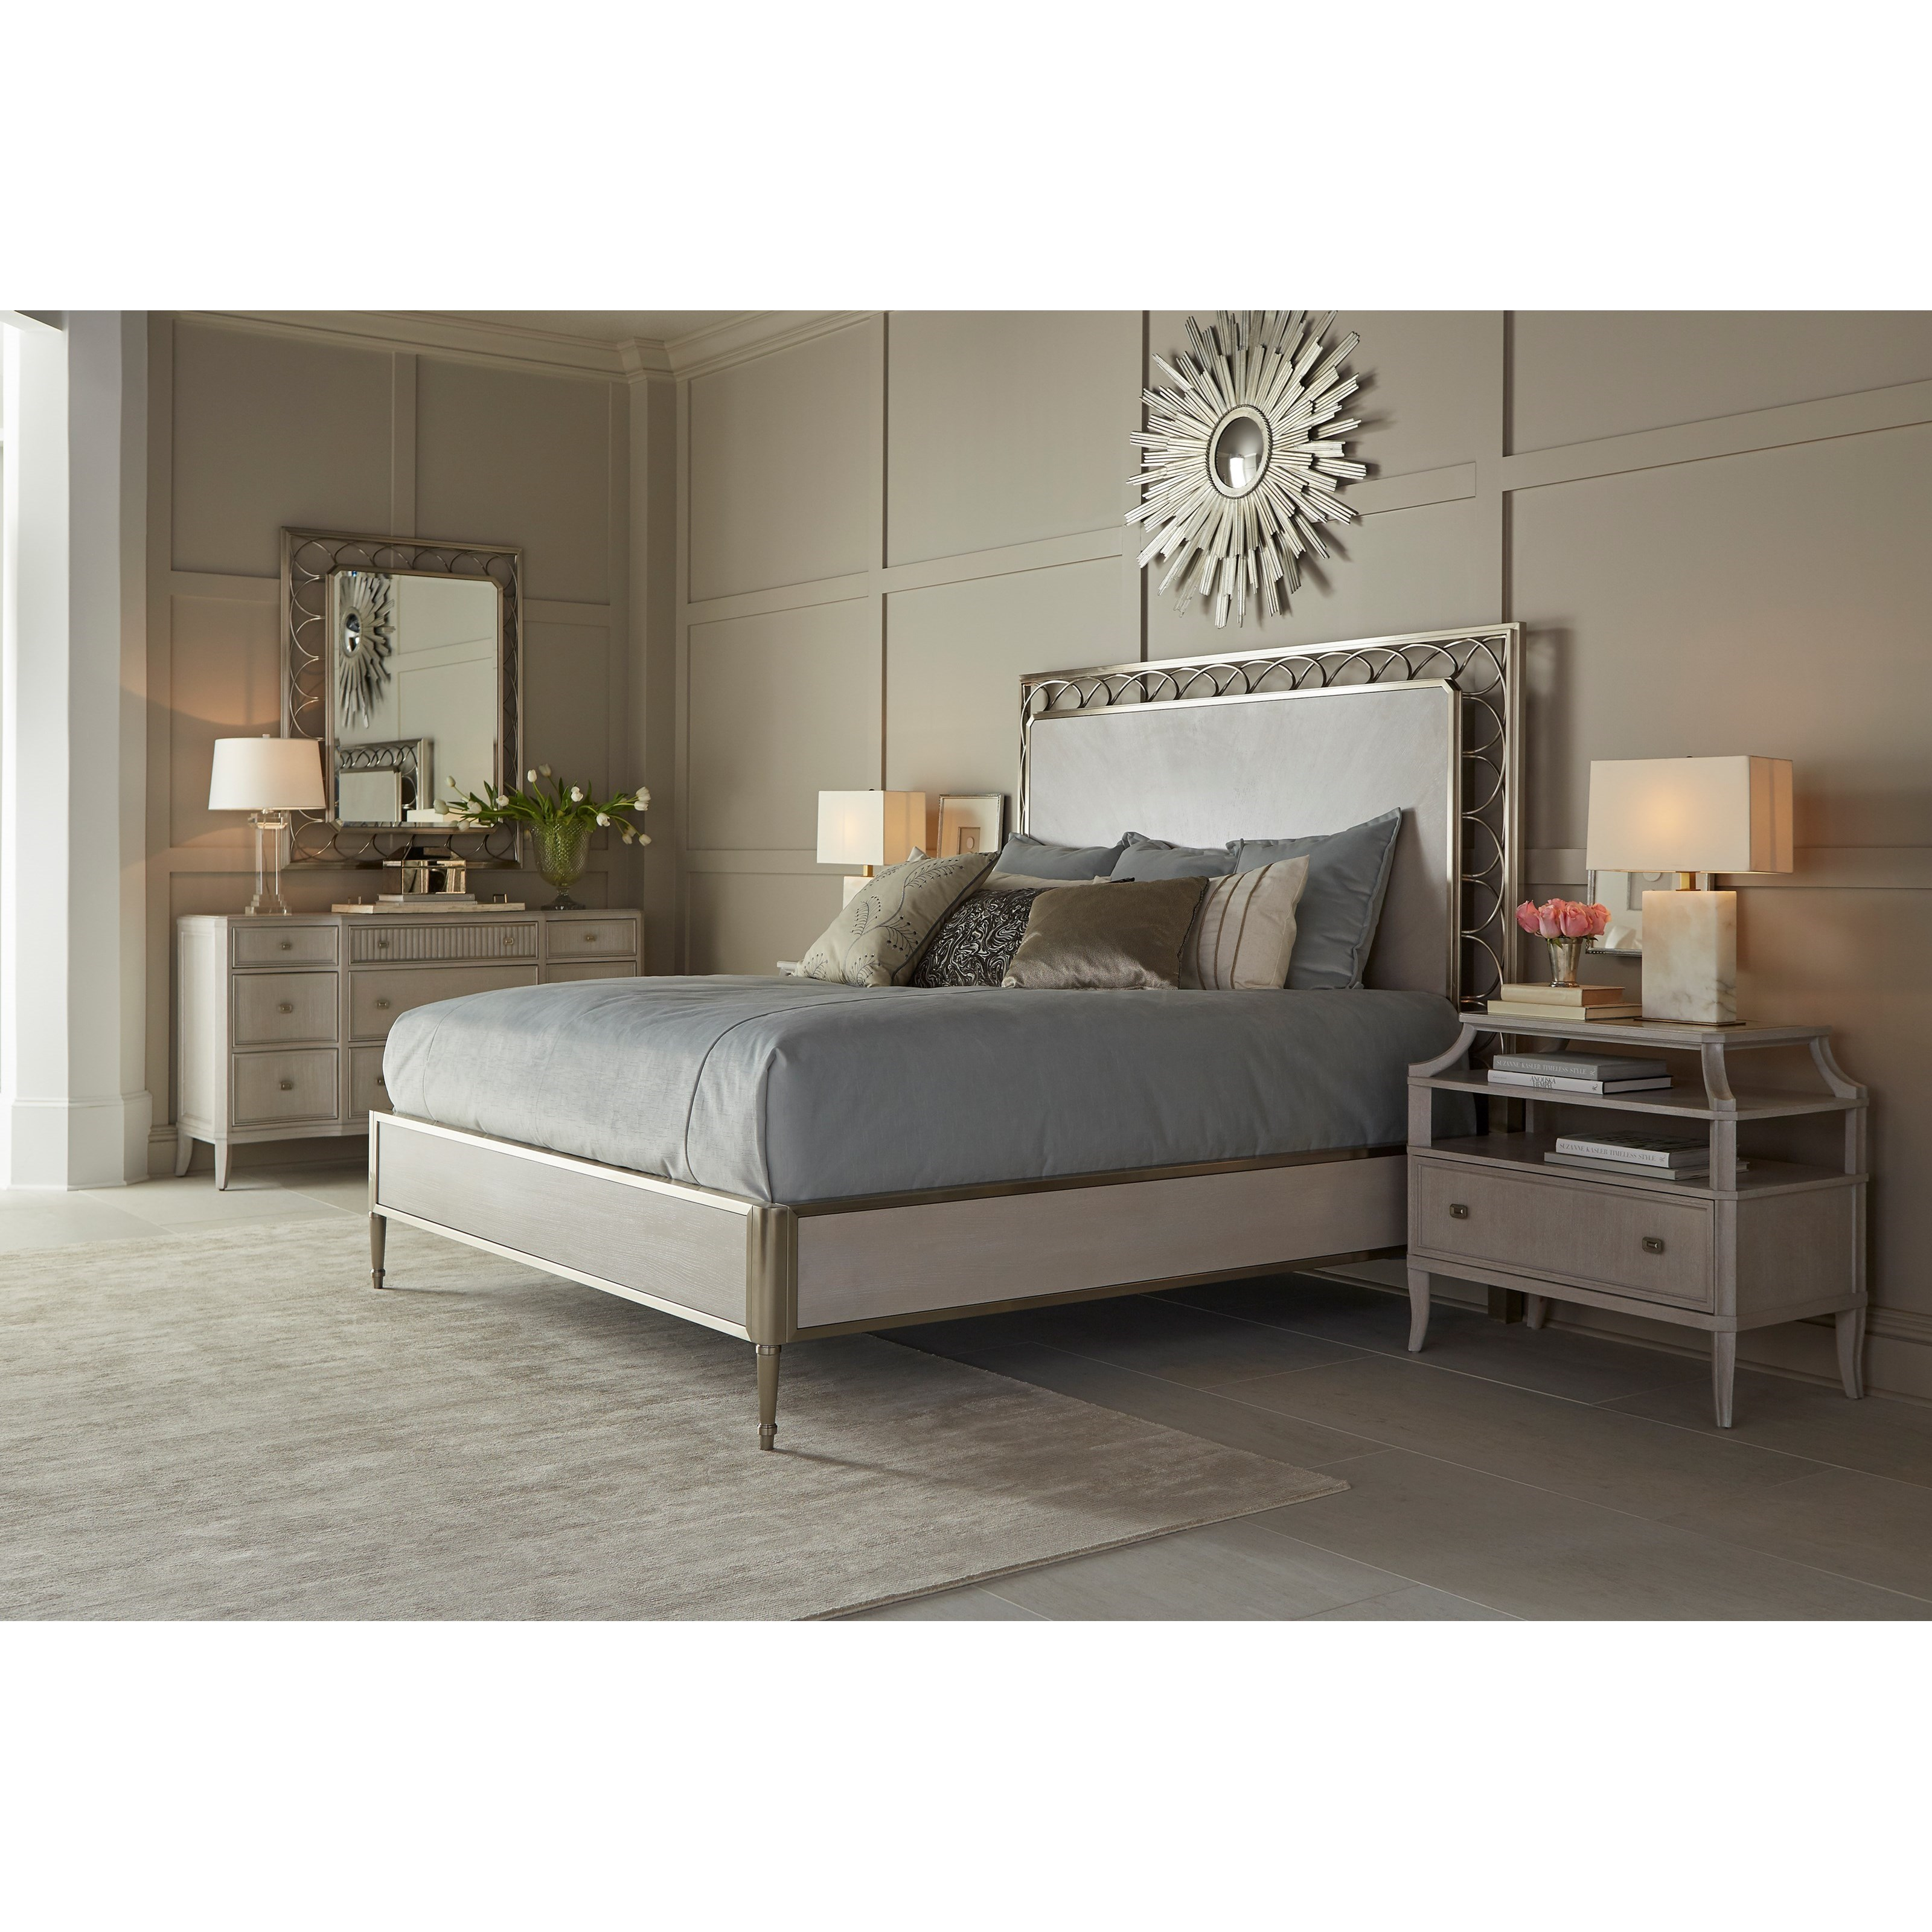 La Scala King Bedroom Group by A.R.T. Furniture Inc at Baer's Furniture